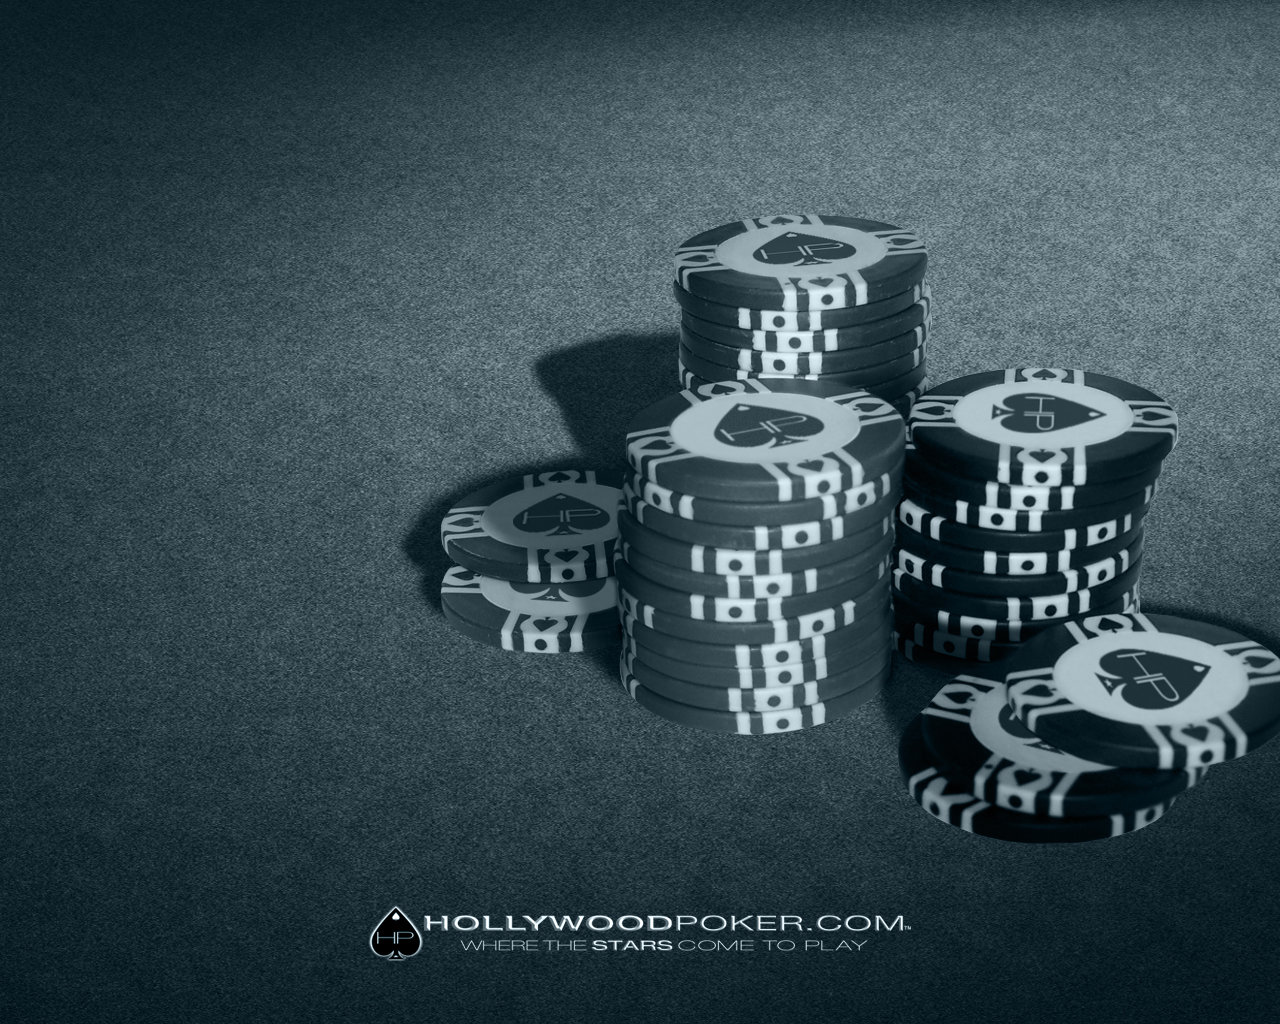 Imagine In Your Casino Expertise However Never Stop Improving